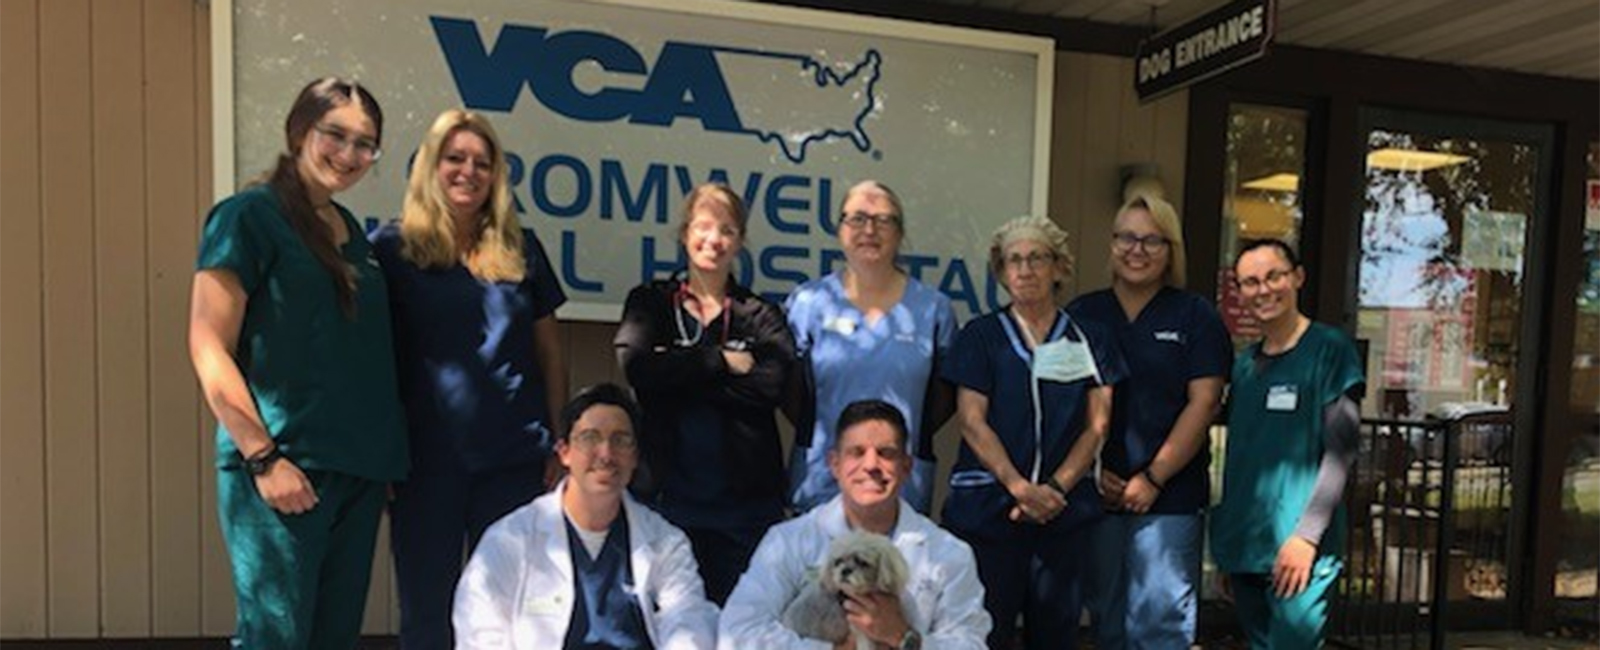 Team Picture of VCA Cromwell Animal Hospital